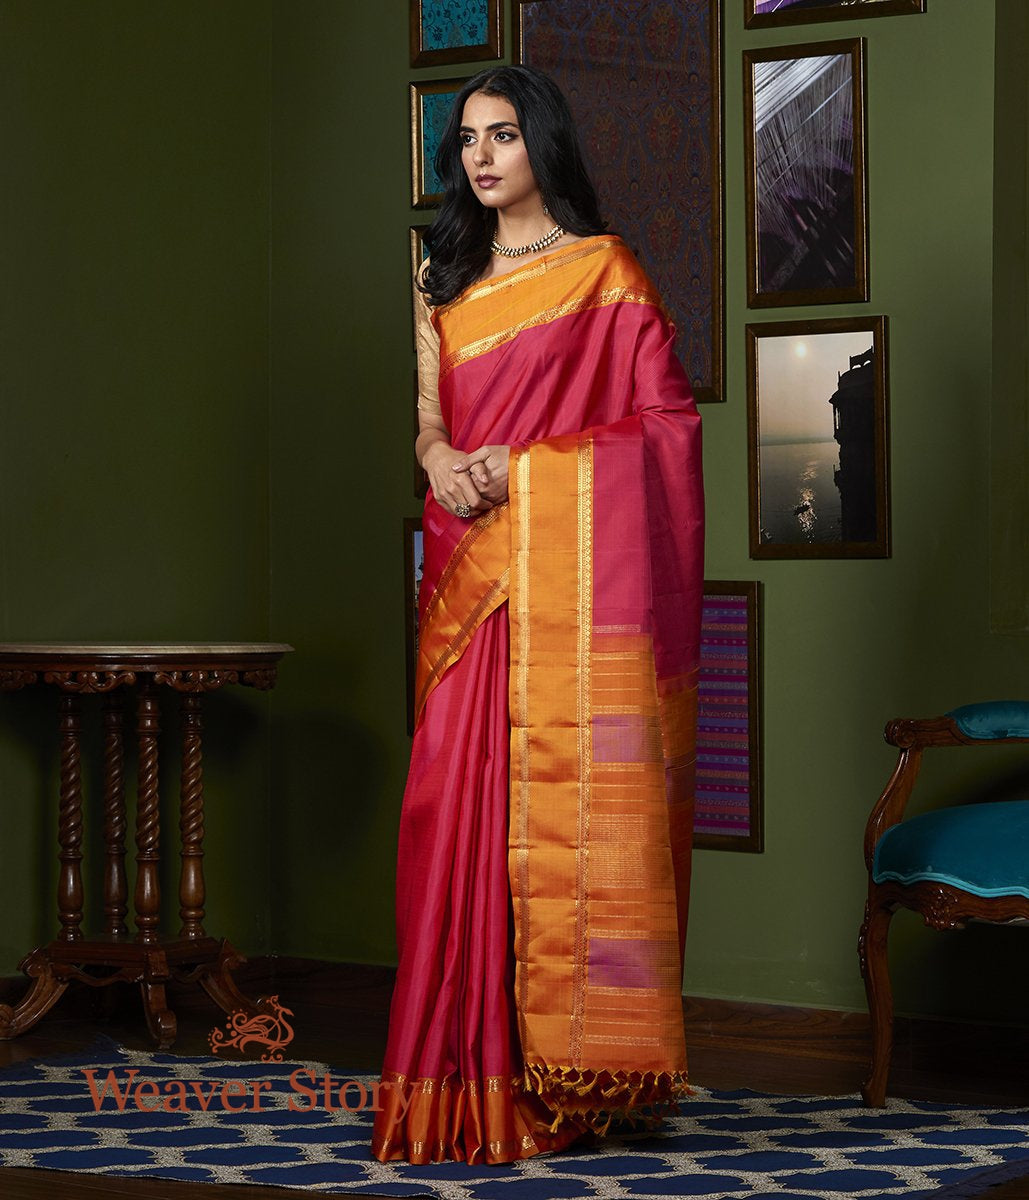 Handwoven Pink Horizontal Stripes Kanjivaram Saree with Orange Border